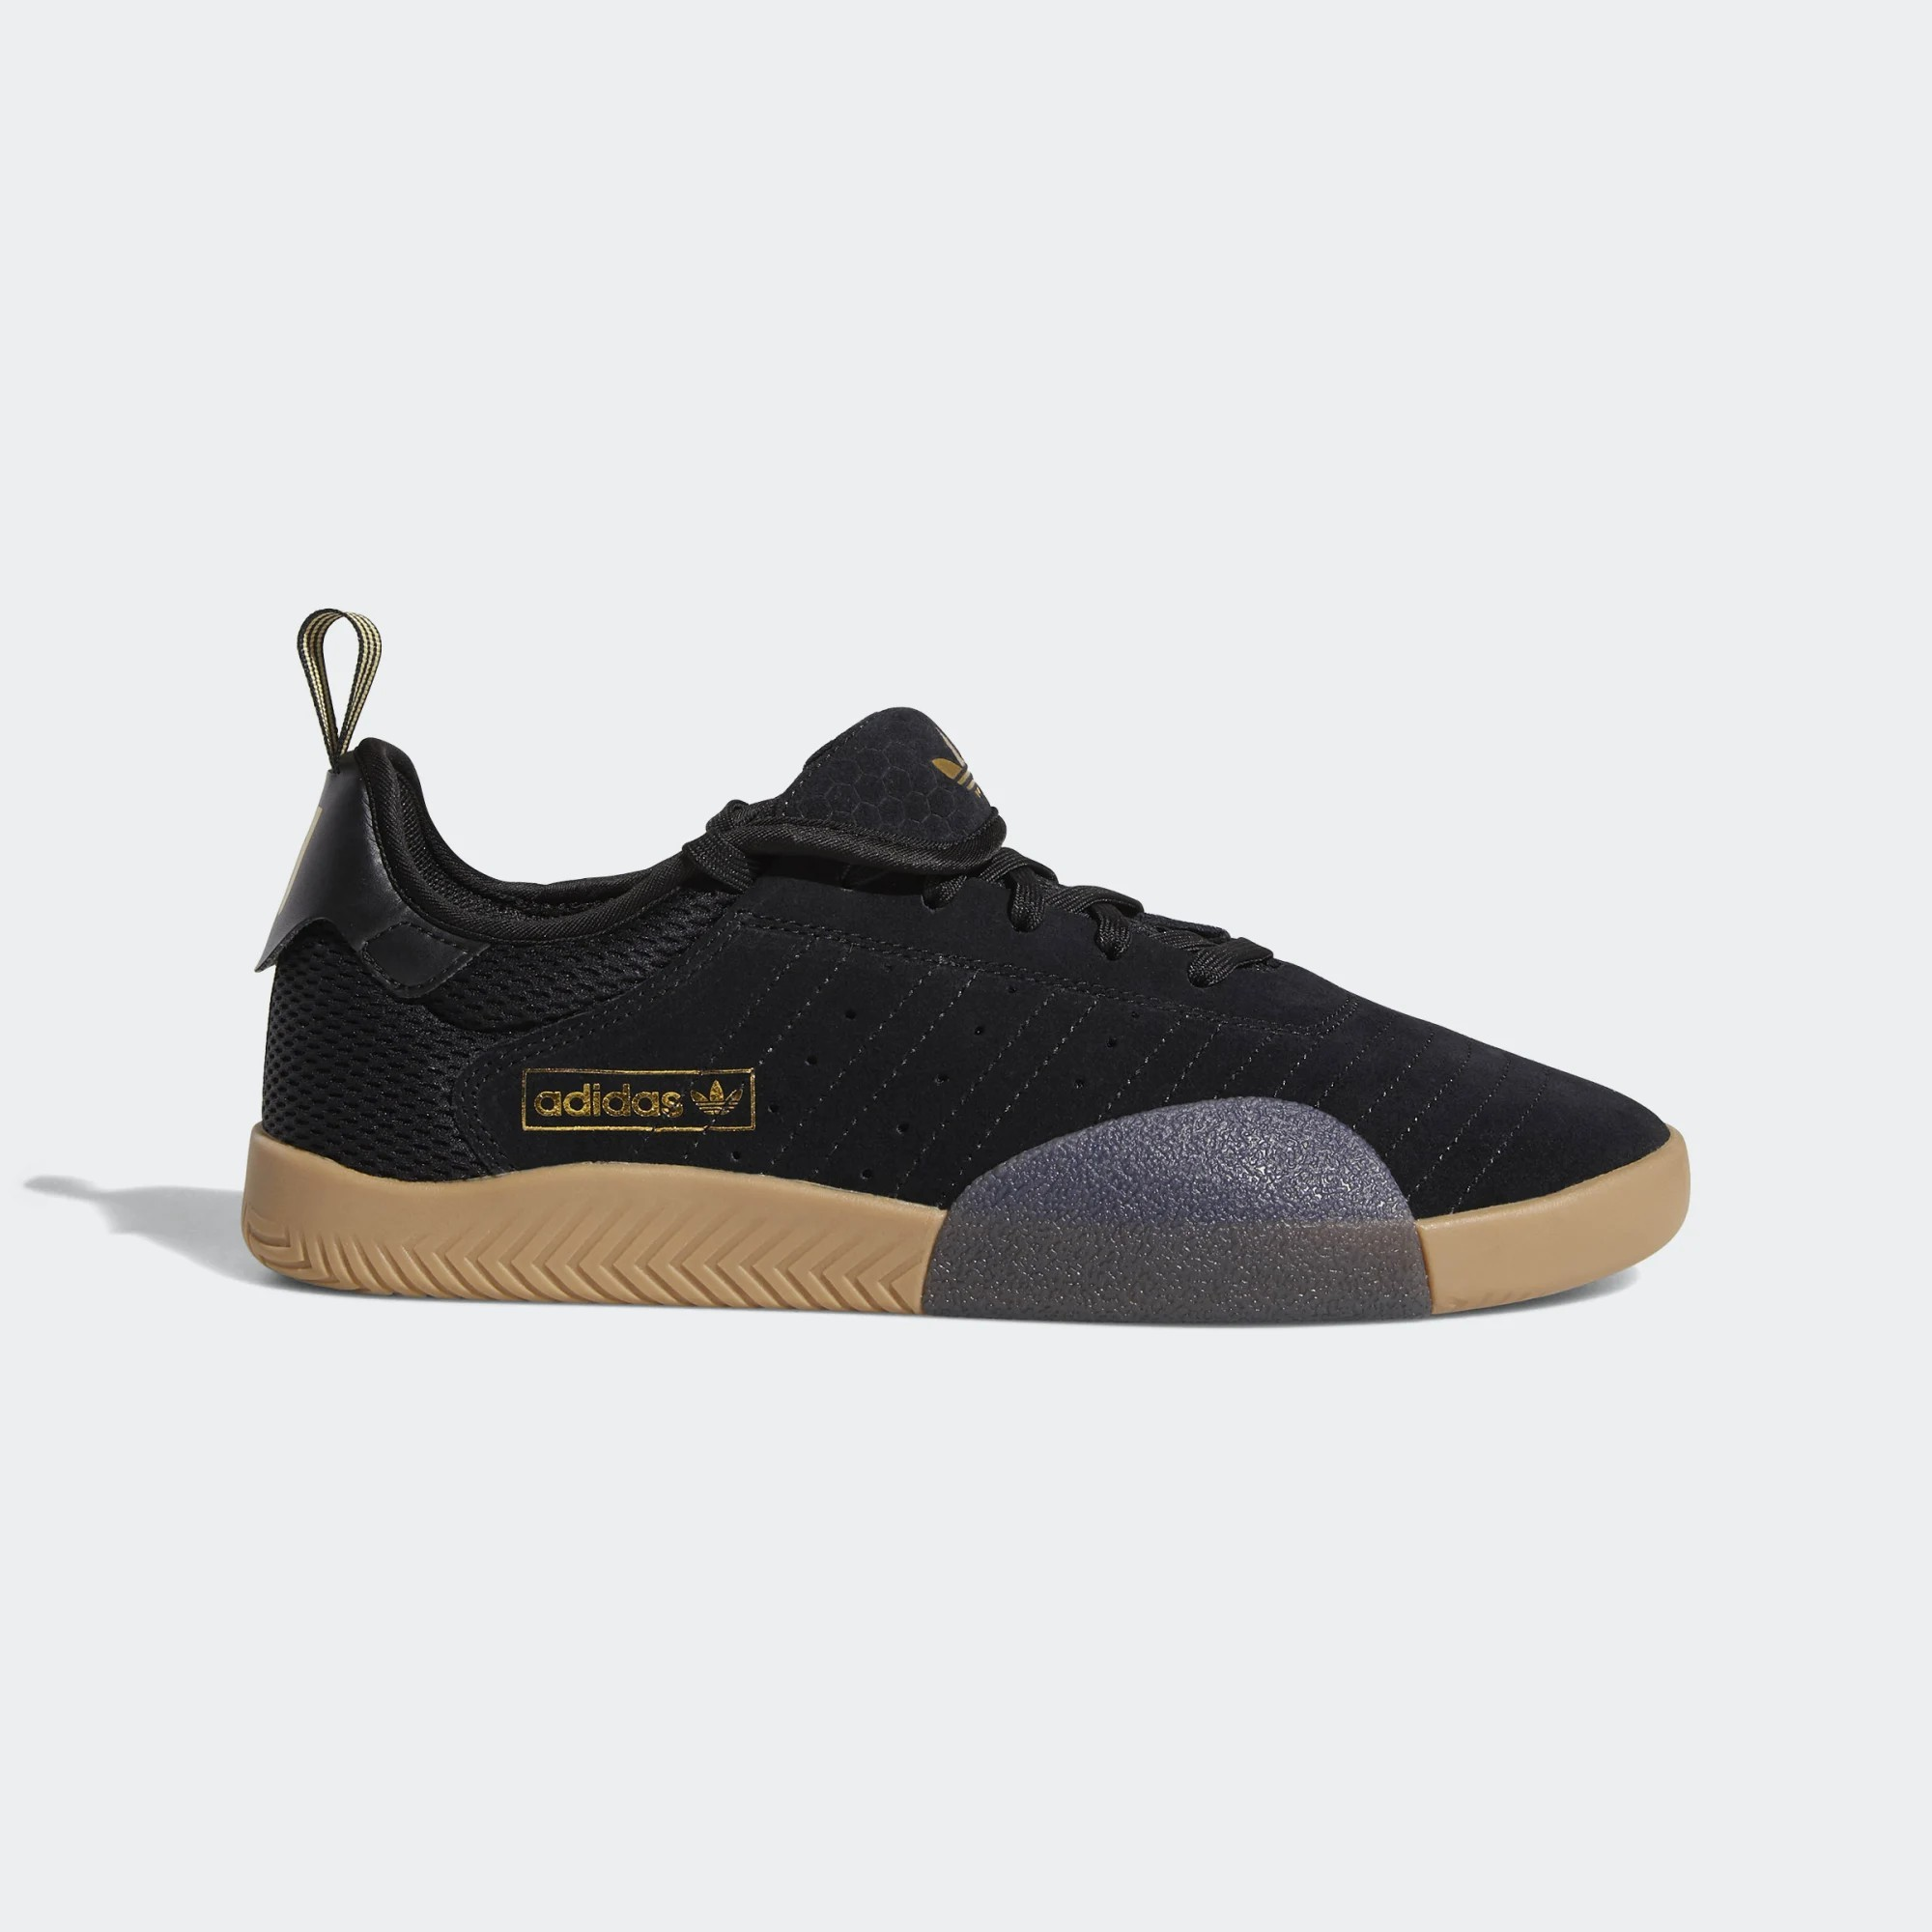 Adidas 3ST.003 Black/Gold/Black DB3163